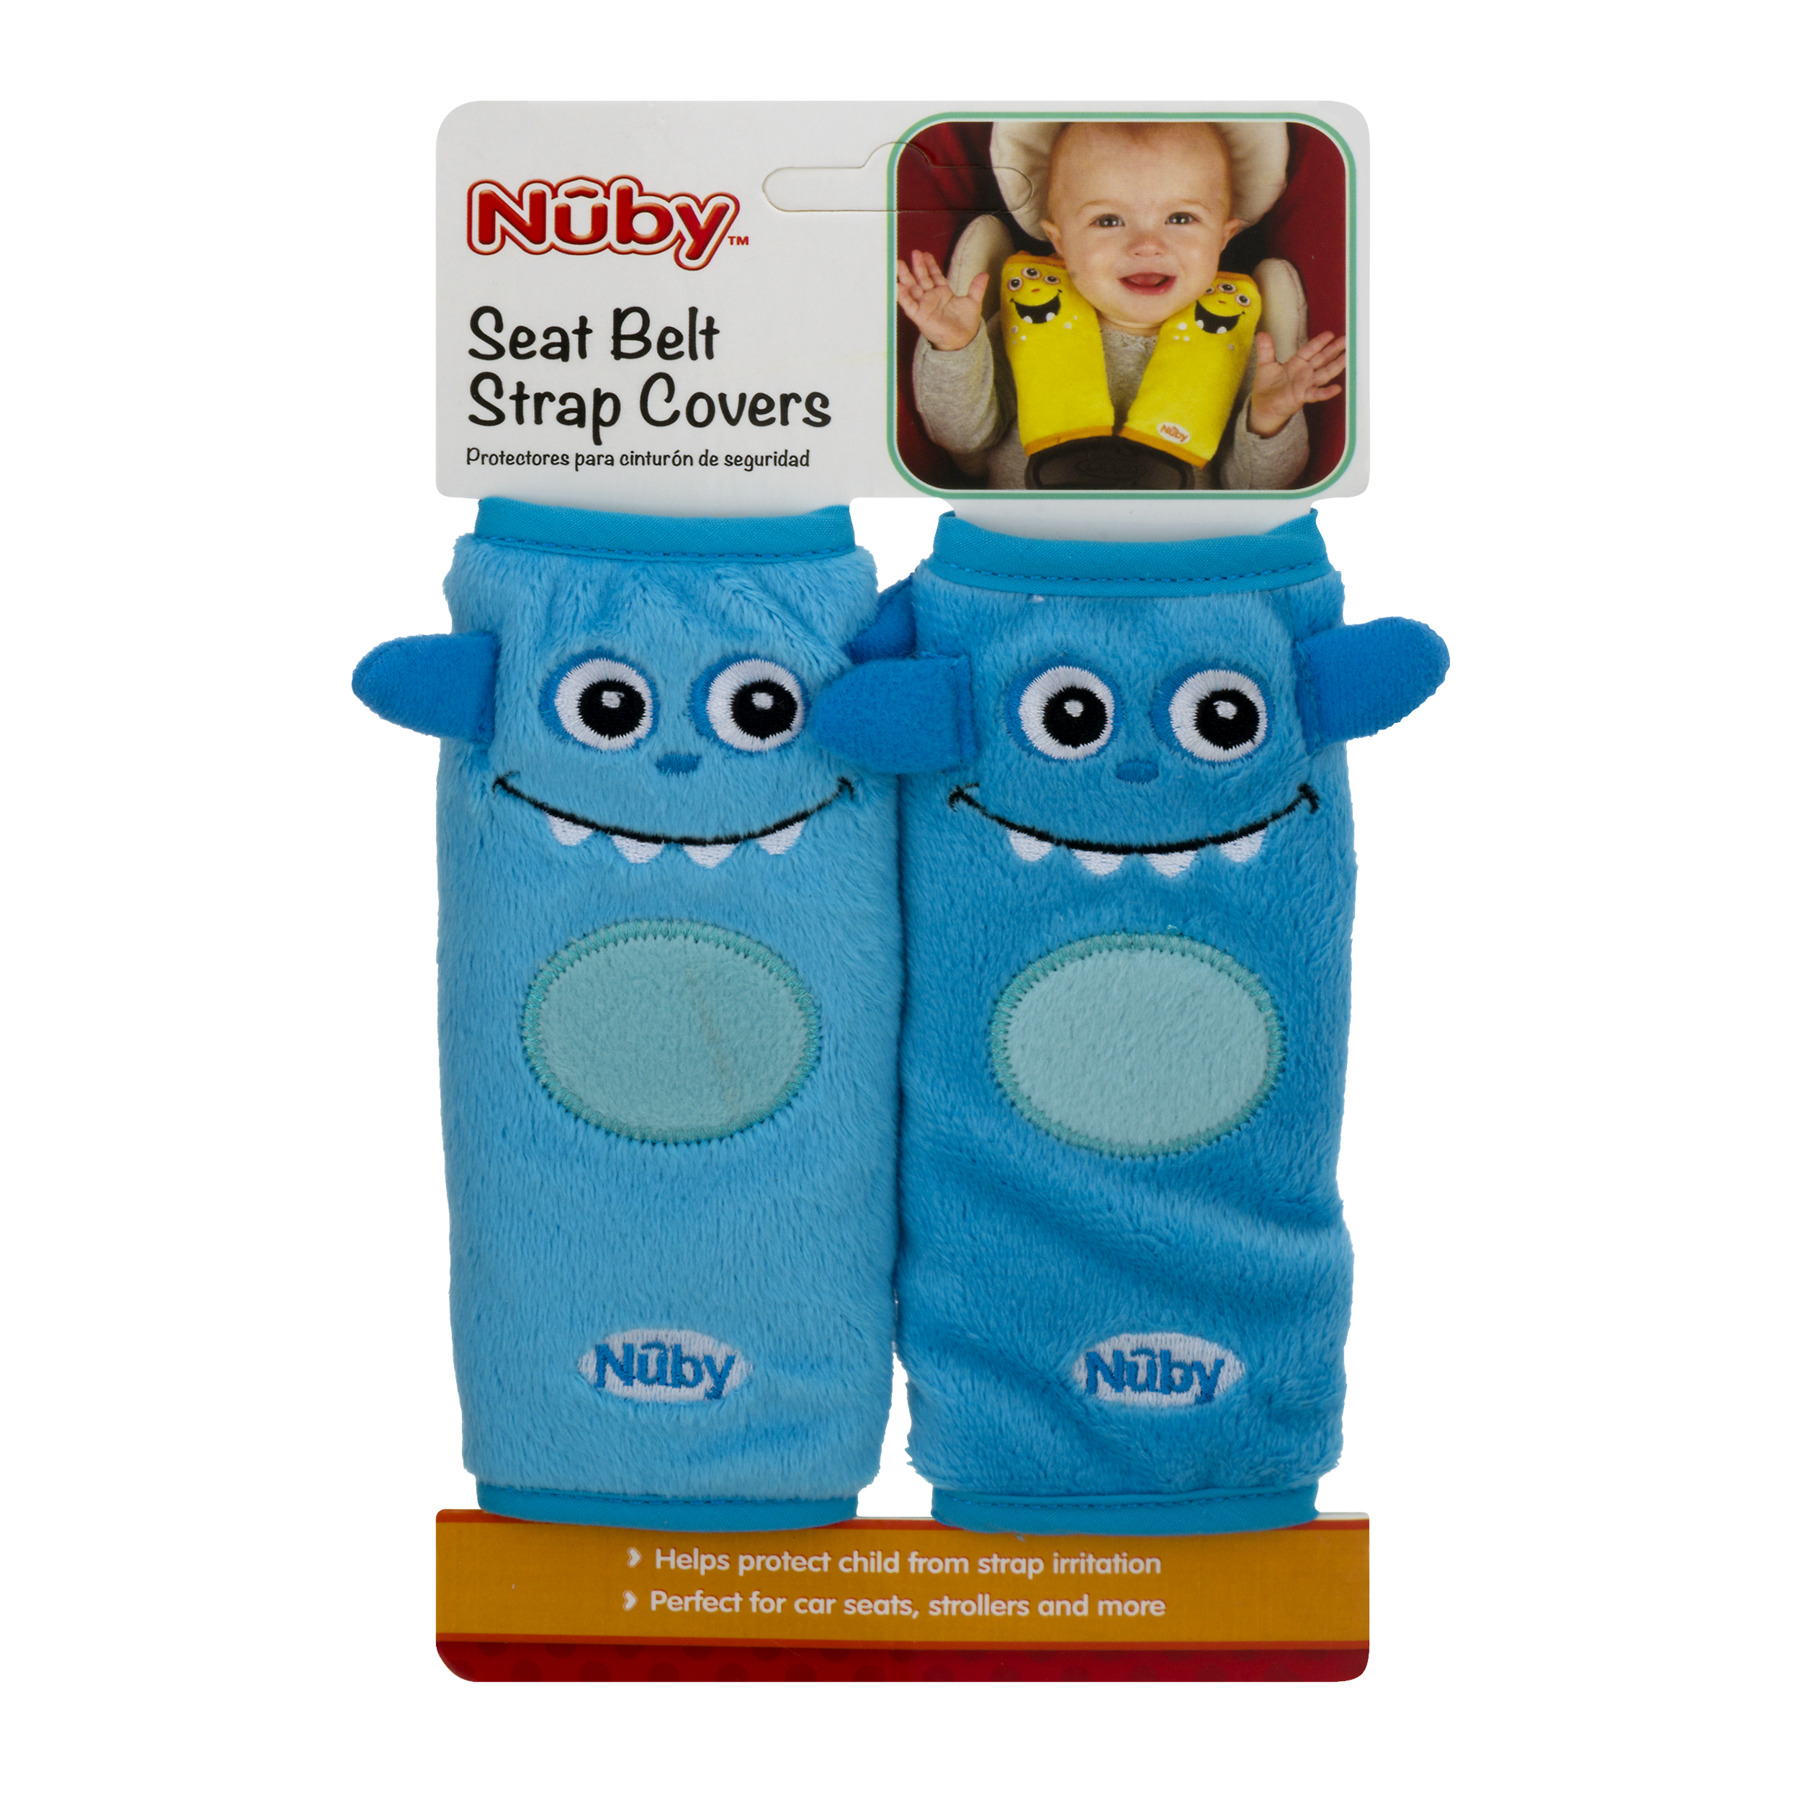 Nuby Seat Belt Strap Covers, 1.0 CT